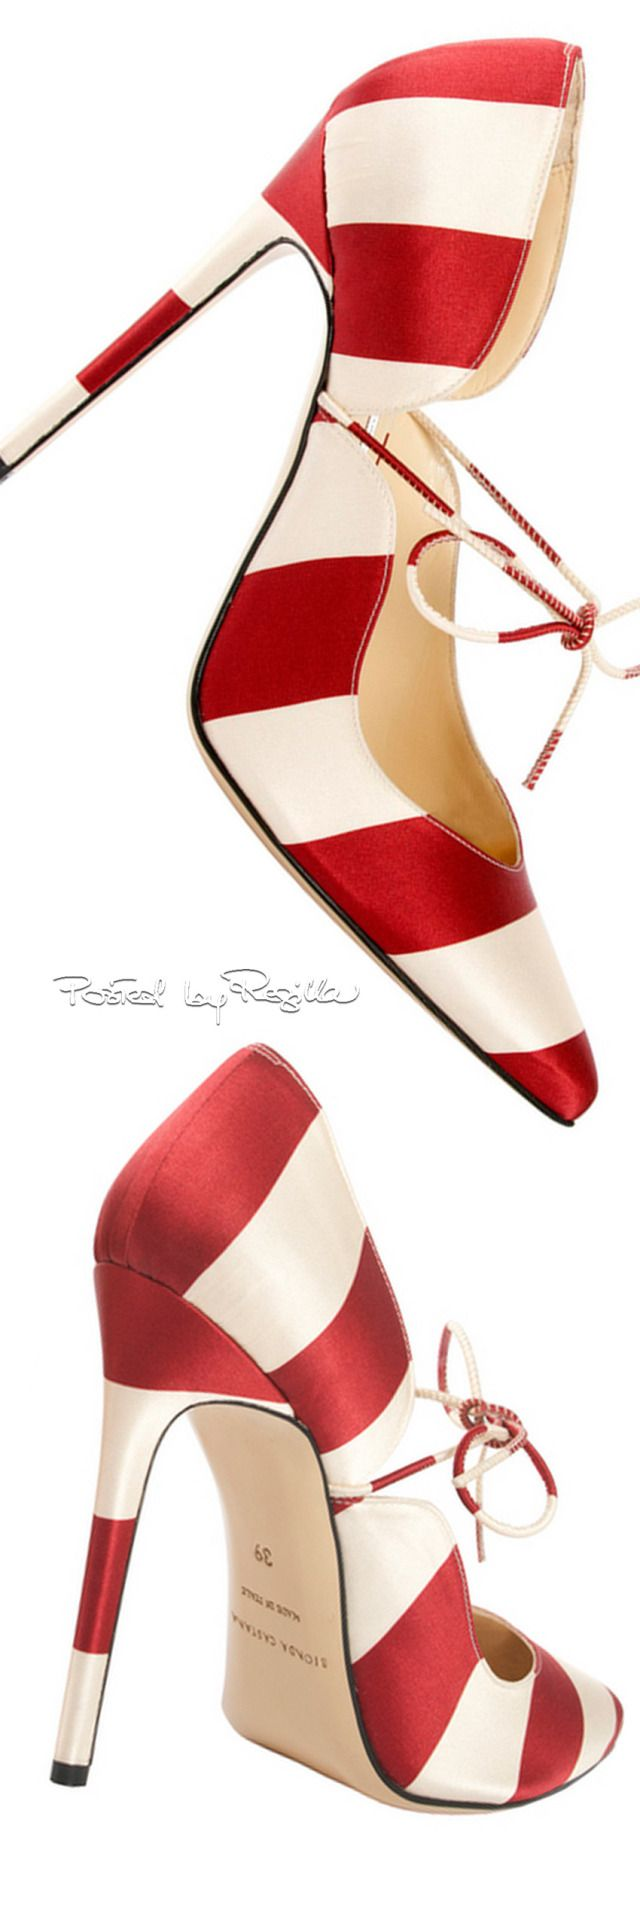 ⚜ Bionda Castana ~ Spring Satin Pumps, Red + White, 2015